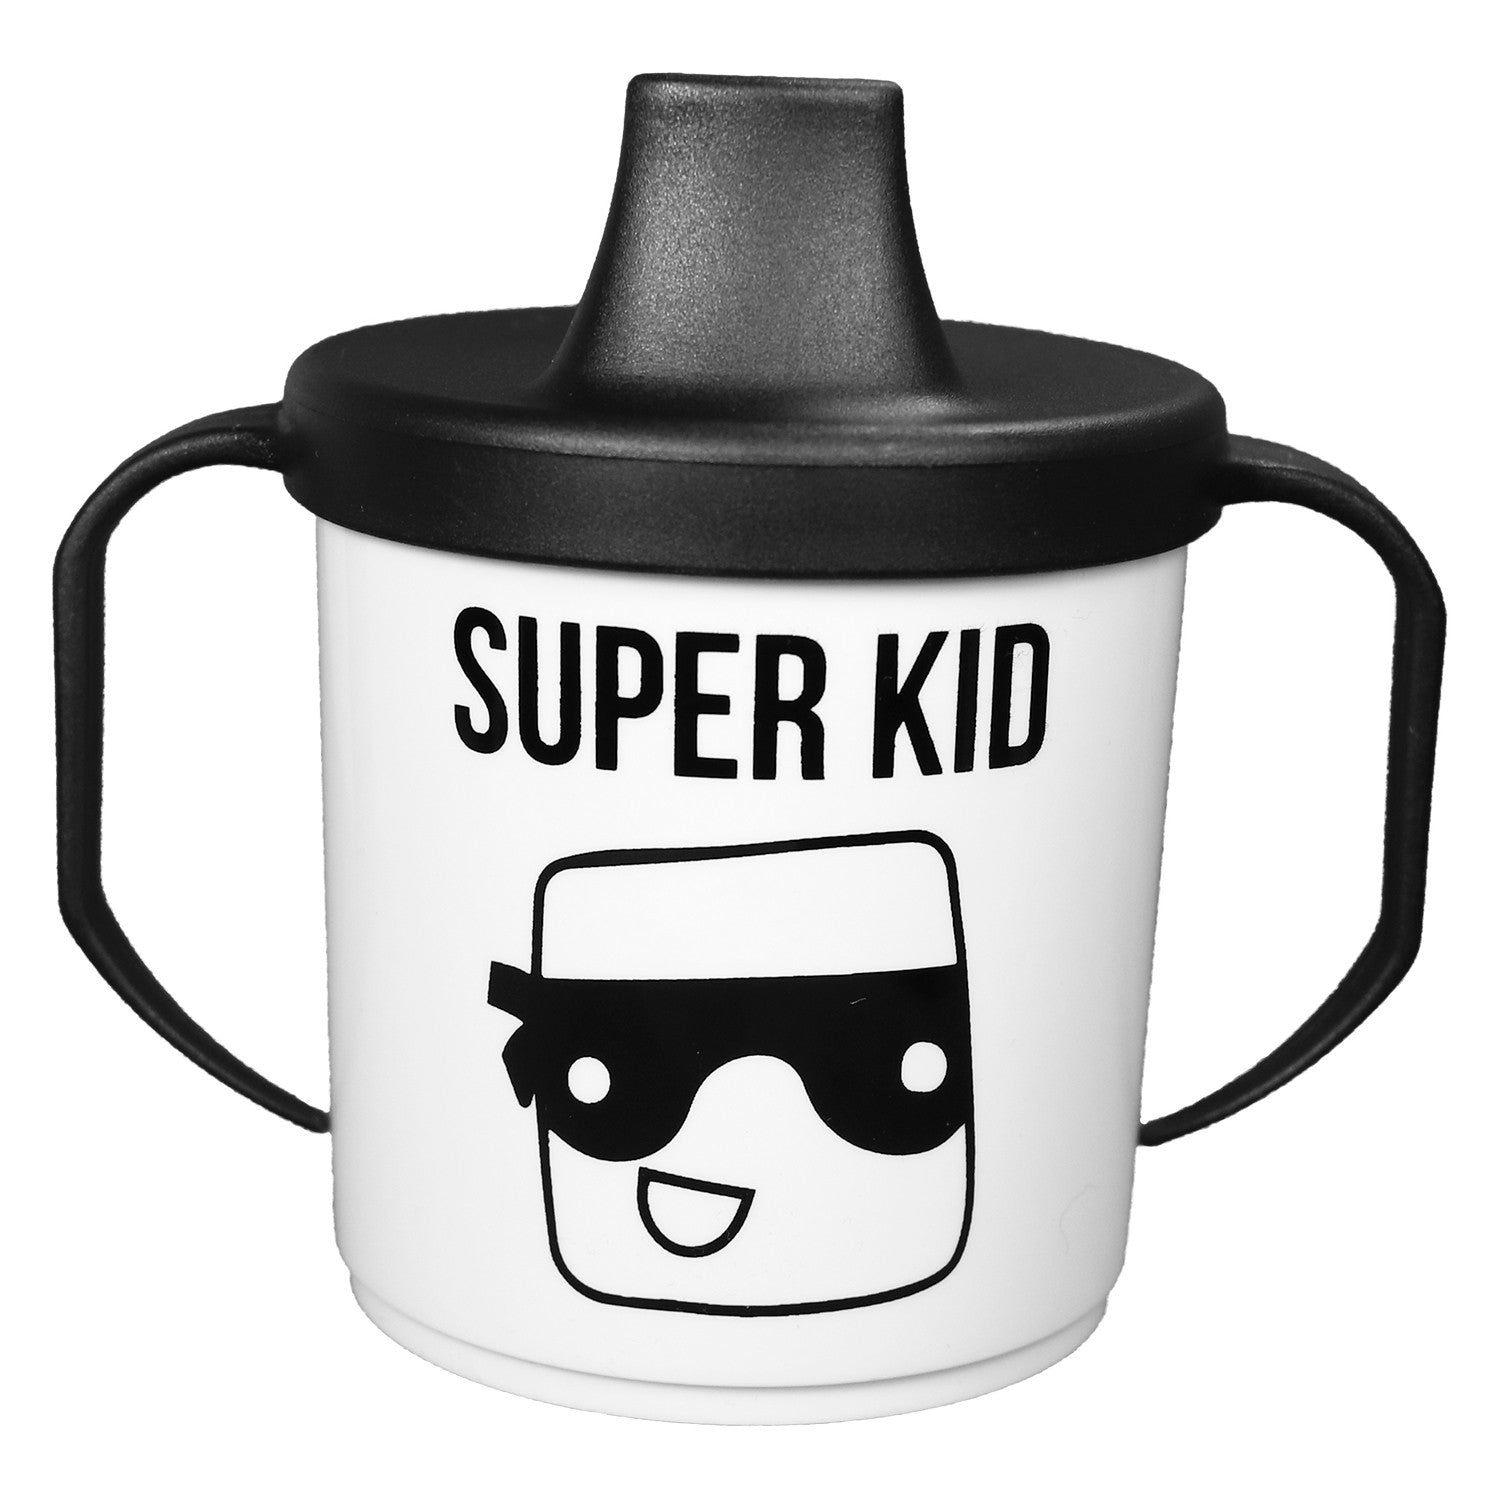 Super Kid Sippy cup